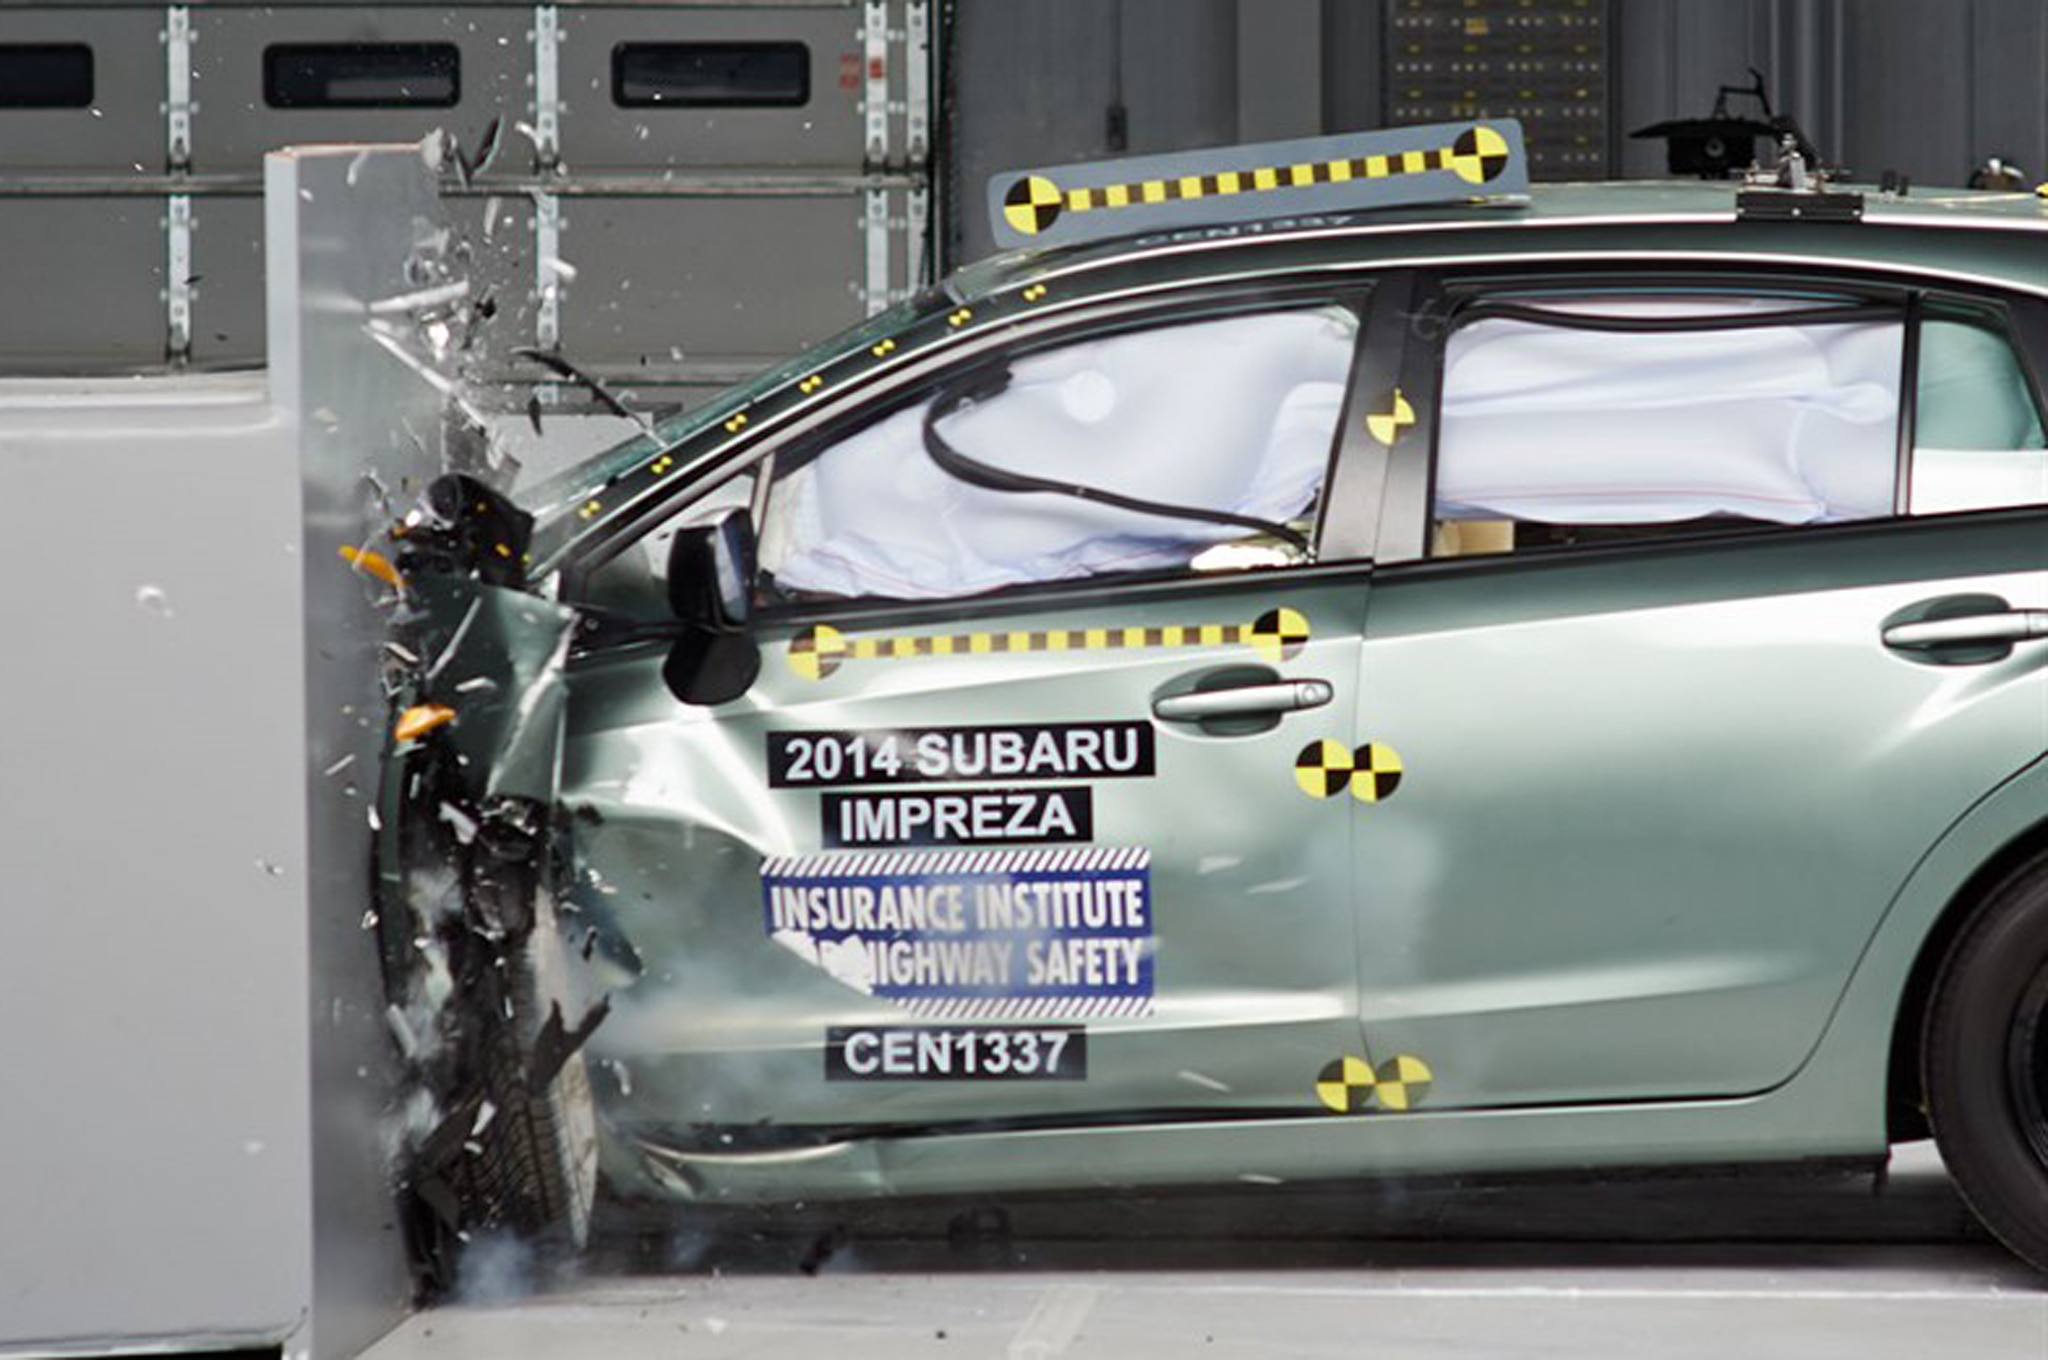 2014 Subaru Impreza Crash Test 21